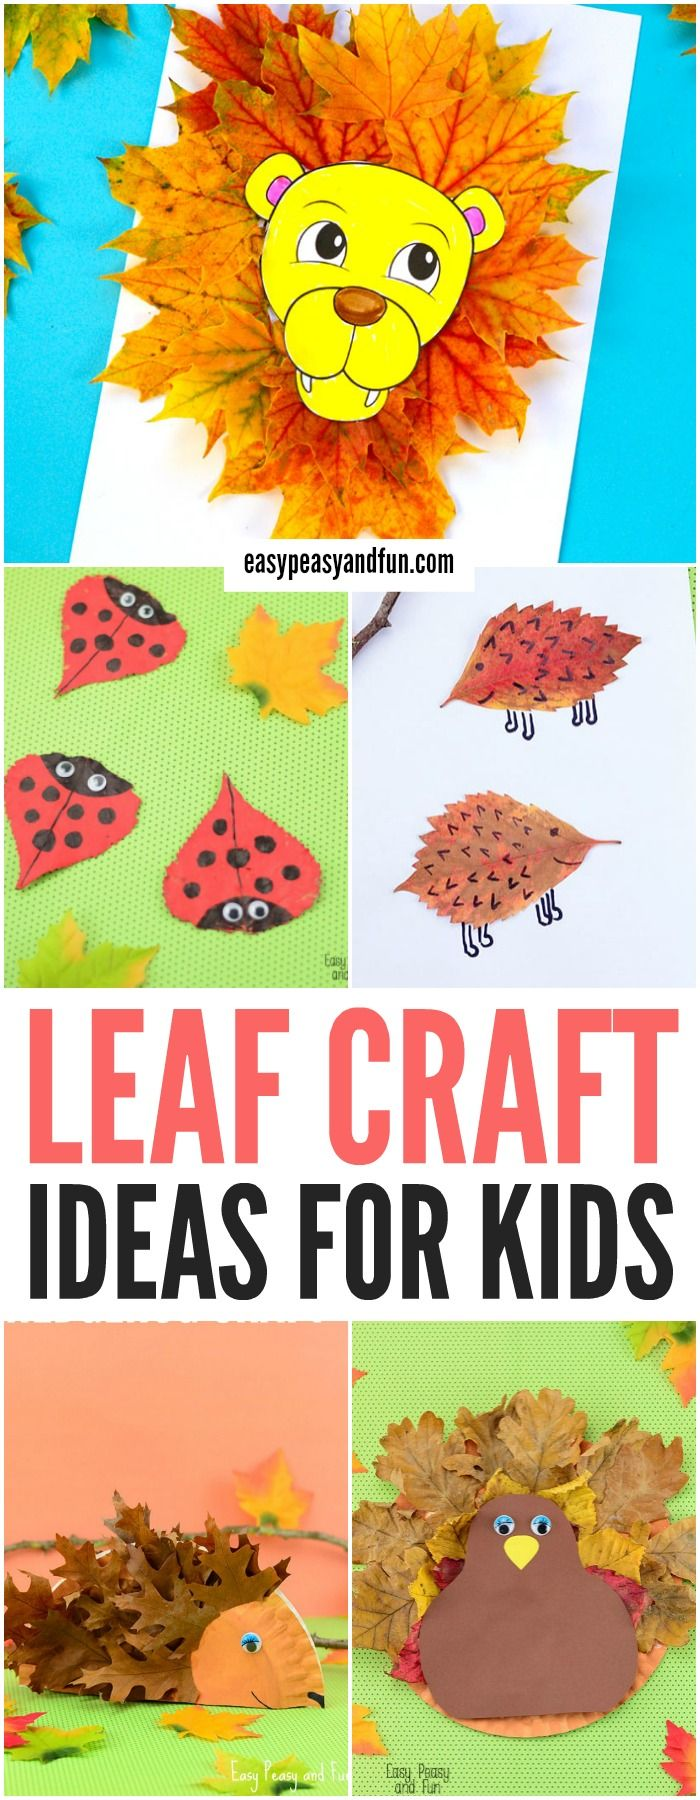 Wonderful Fall Leaf Crafts Ideas | Easy Peasy and Fun | Leaf